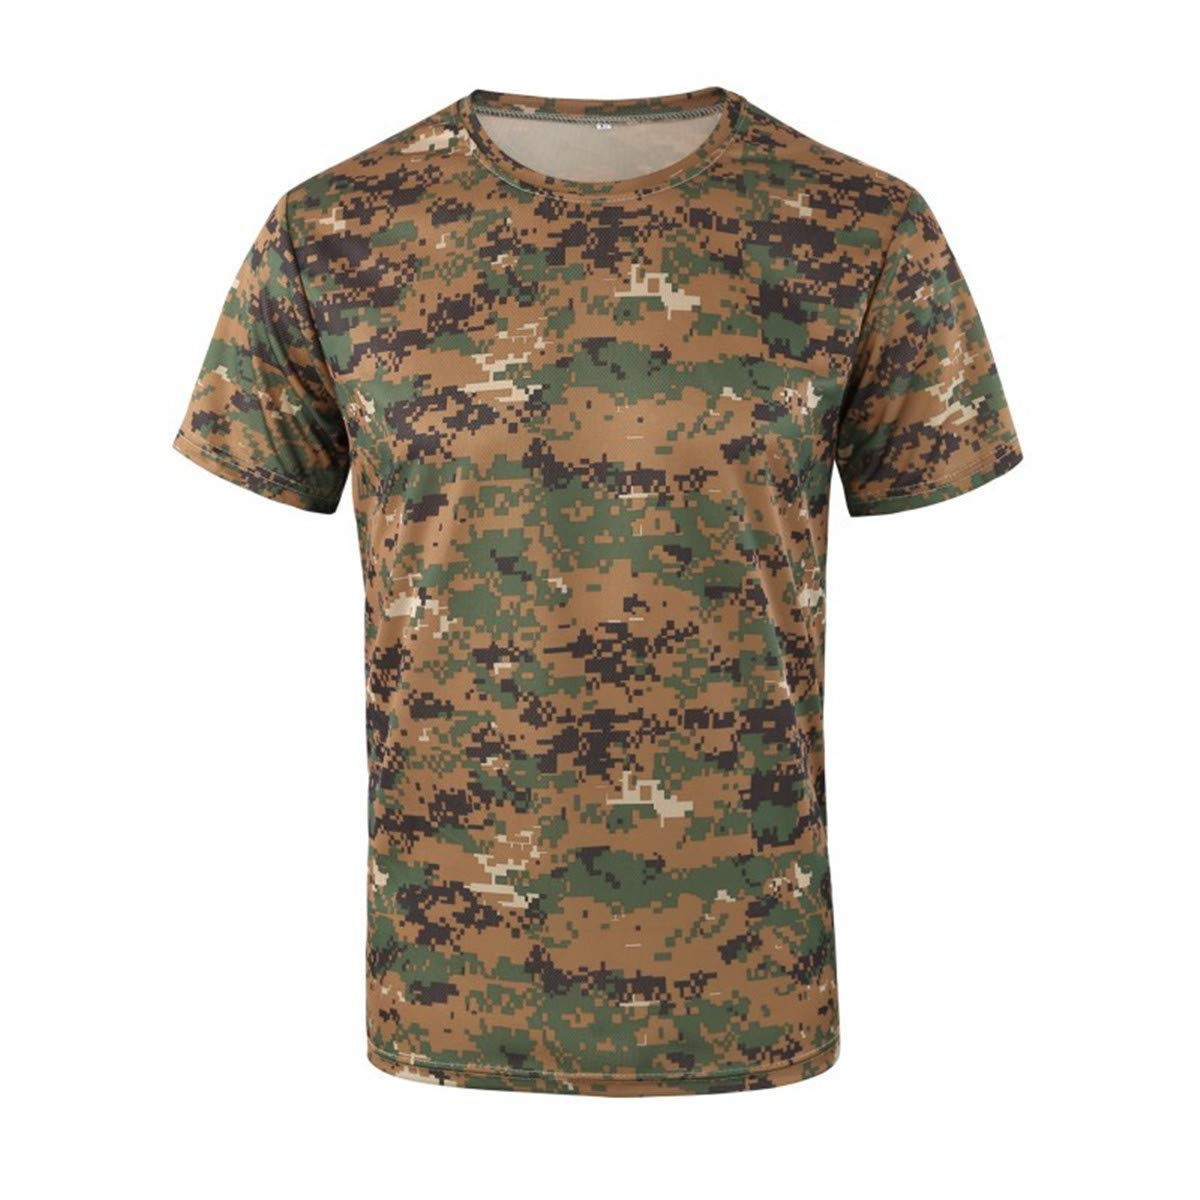 Formesy T-Shirt Tactique Outdoor pour Homme Respirant Arm/ée Militaire Combat,Casual Tee Shirt Camouflag Tee Tops